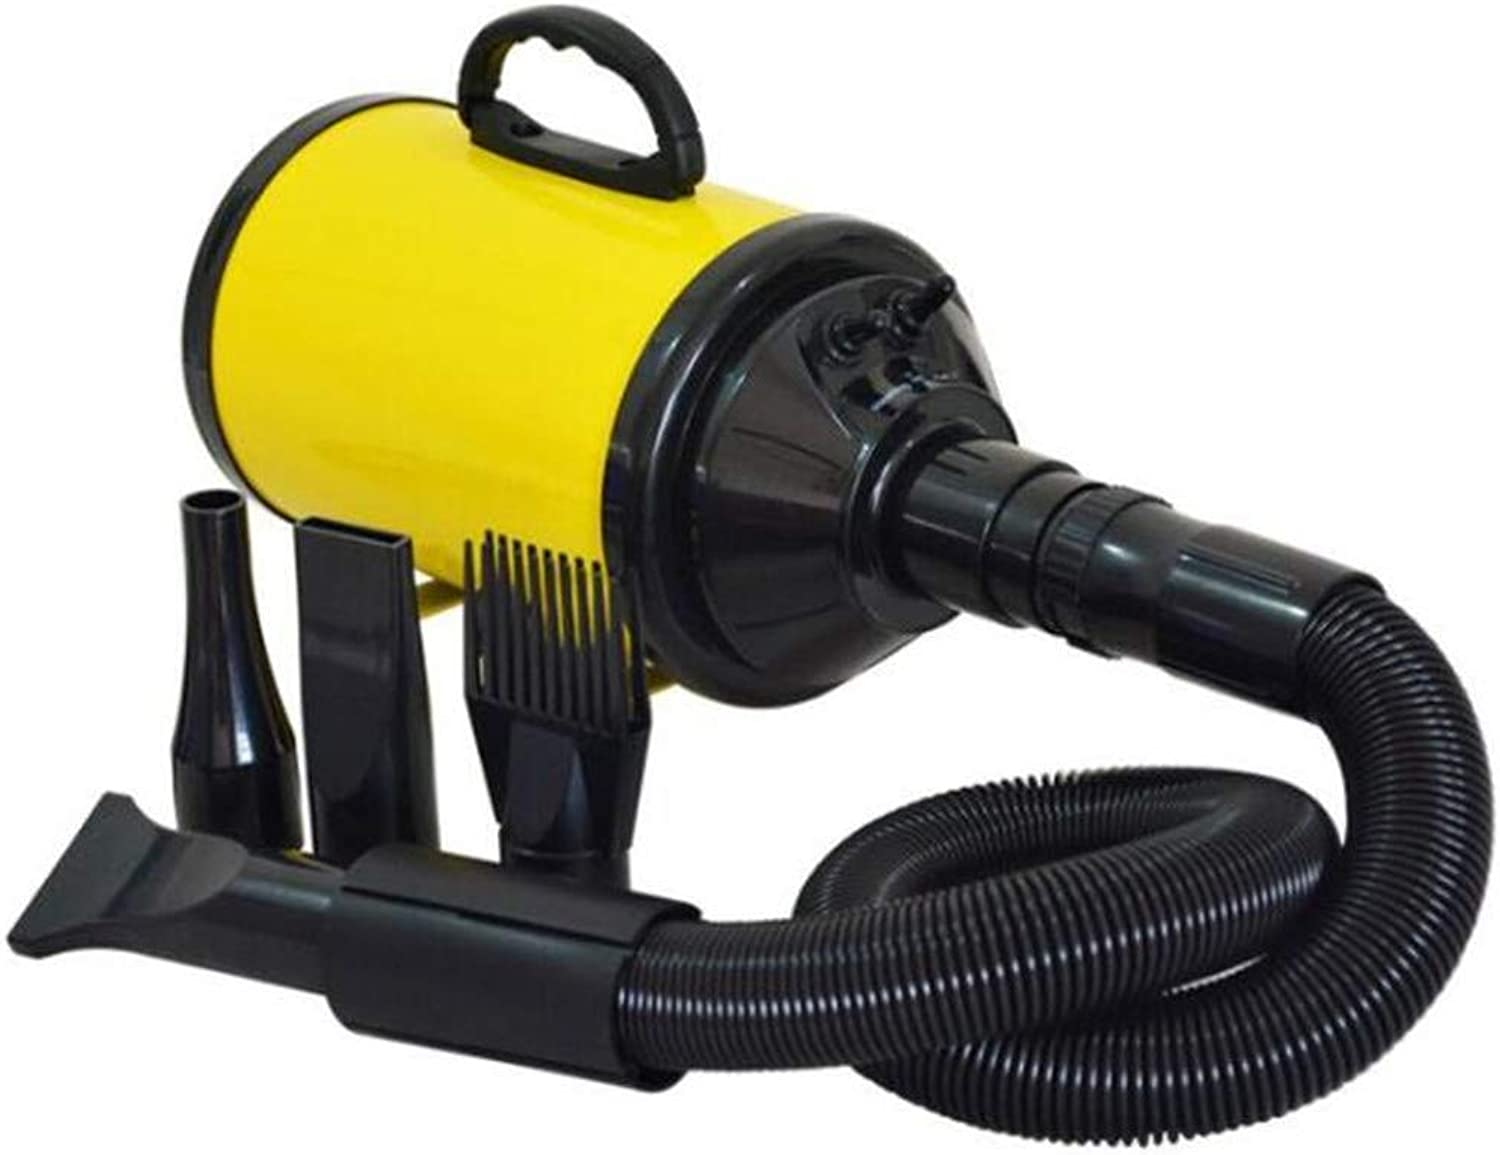 Pet Dog Blower Professional Pet Dog Dryer Pet Club Pet Grooming Hair Dryer For Dogs And Cats With 4 Different Nozzles